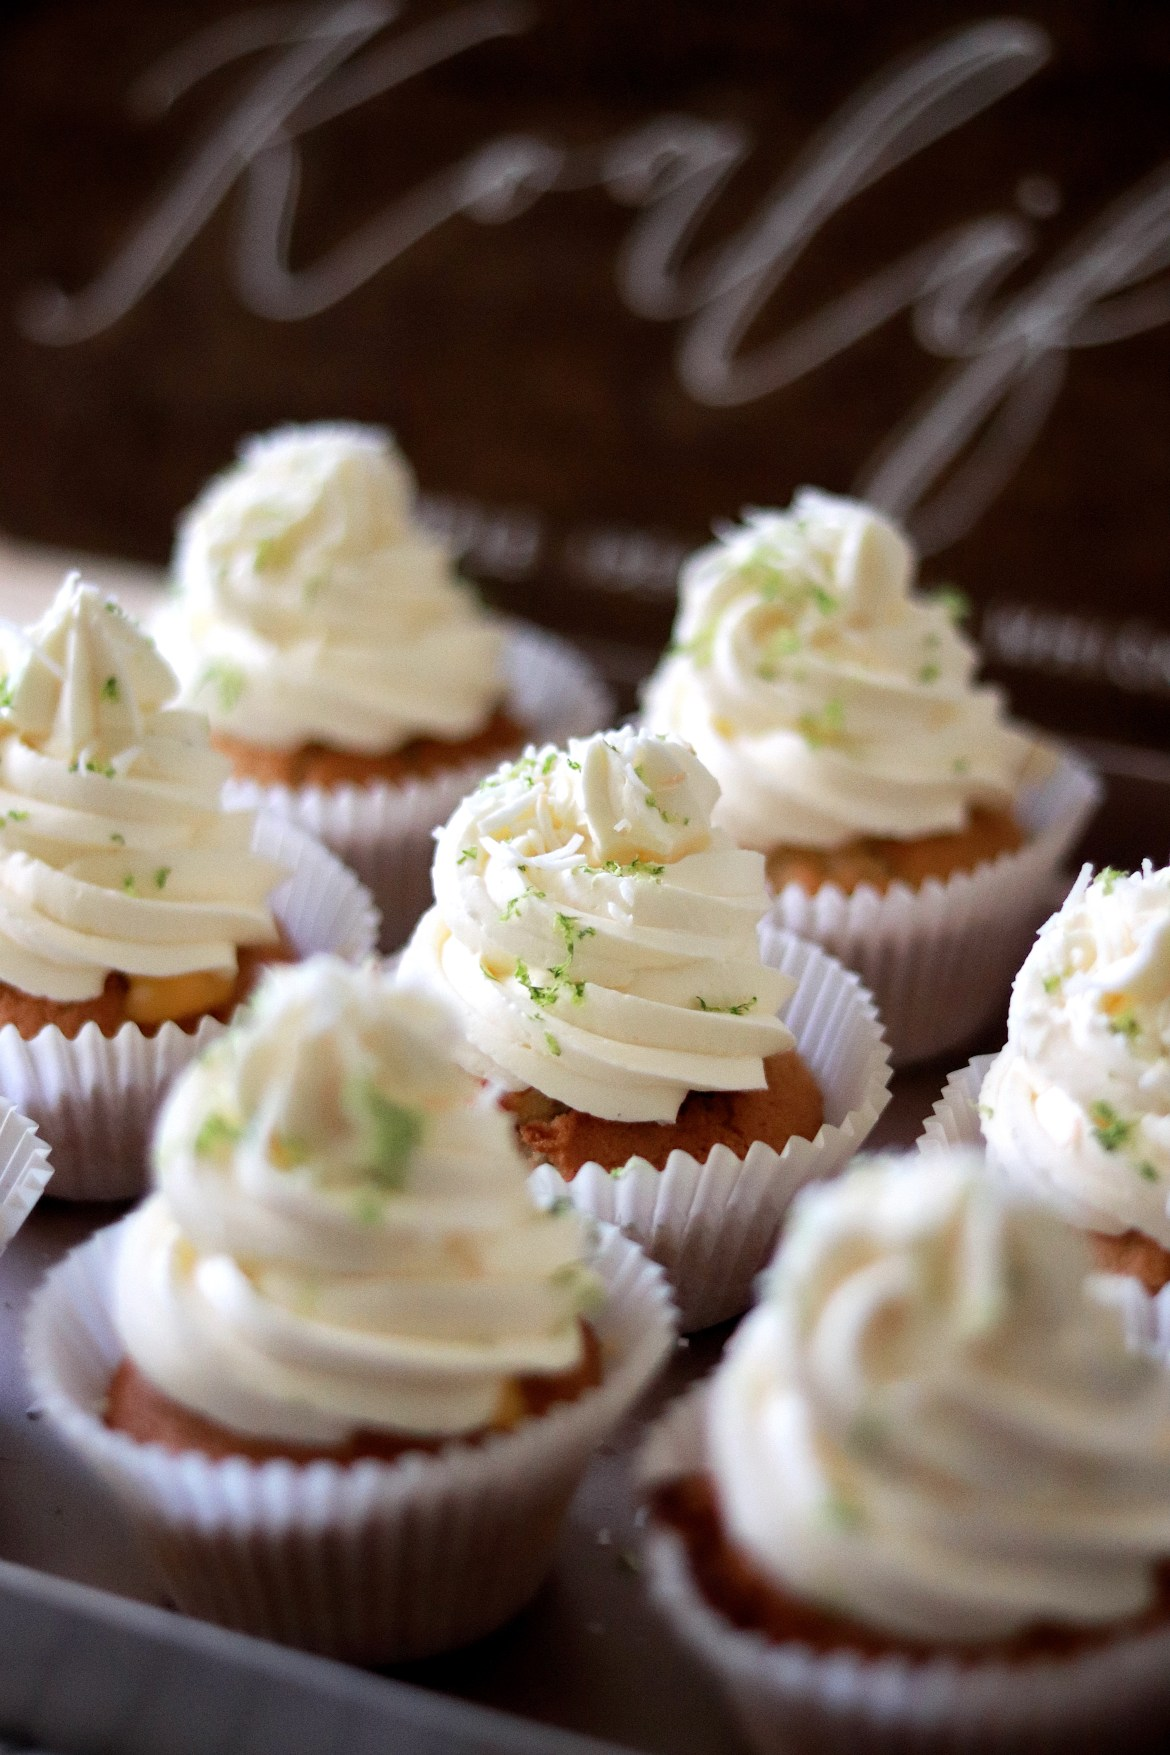 Coconut_lime_cupcake_with_Swiss_Meringue_Coconut_Buttercream_and_Lime_curd2